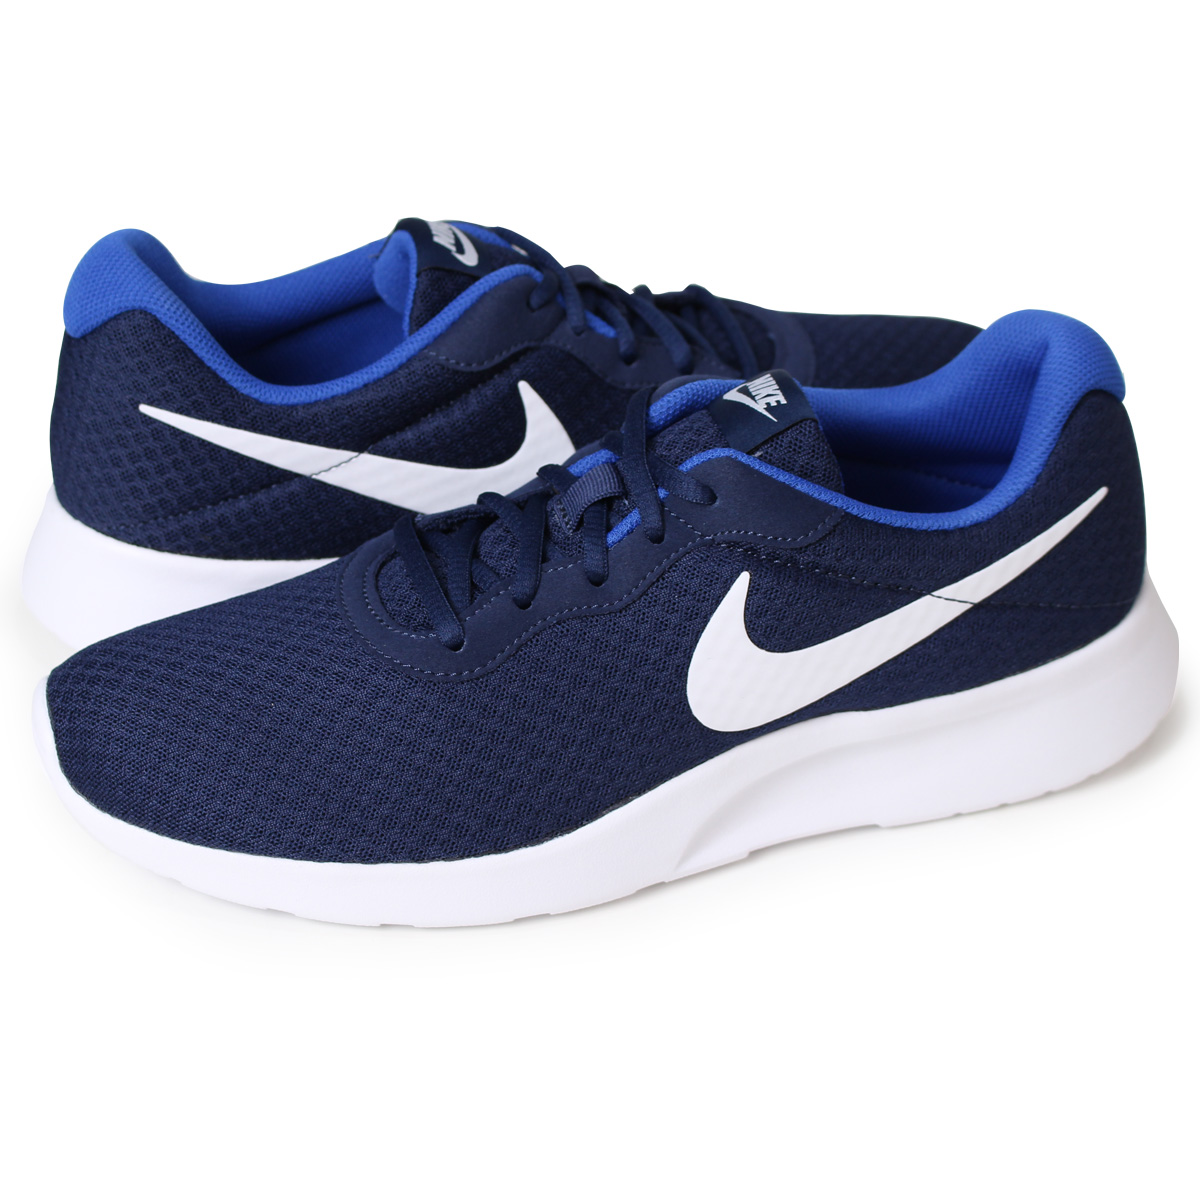 9a89e83bc8ad ... online india best prices reviews ni091sh68acpindfas b6974 e7e5d  free  shipping nike tanjun nike tongue jun sneakers men 812654 414 navy load  planned ...